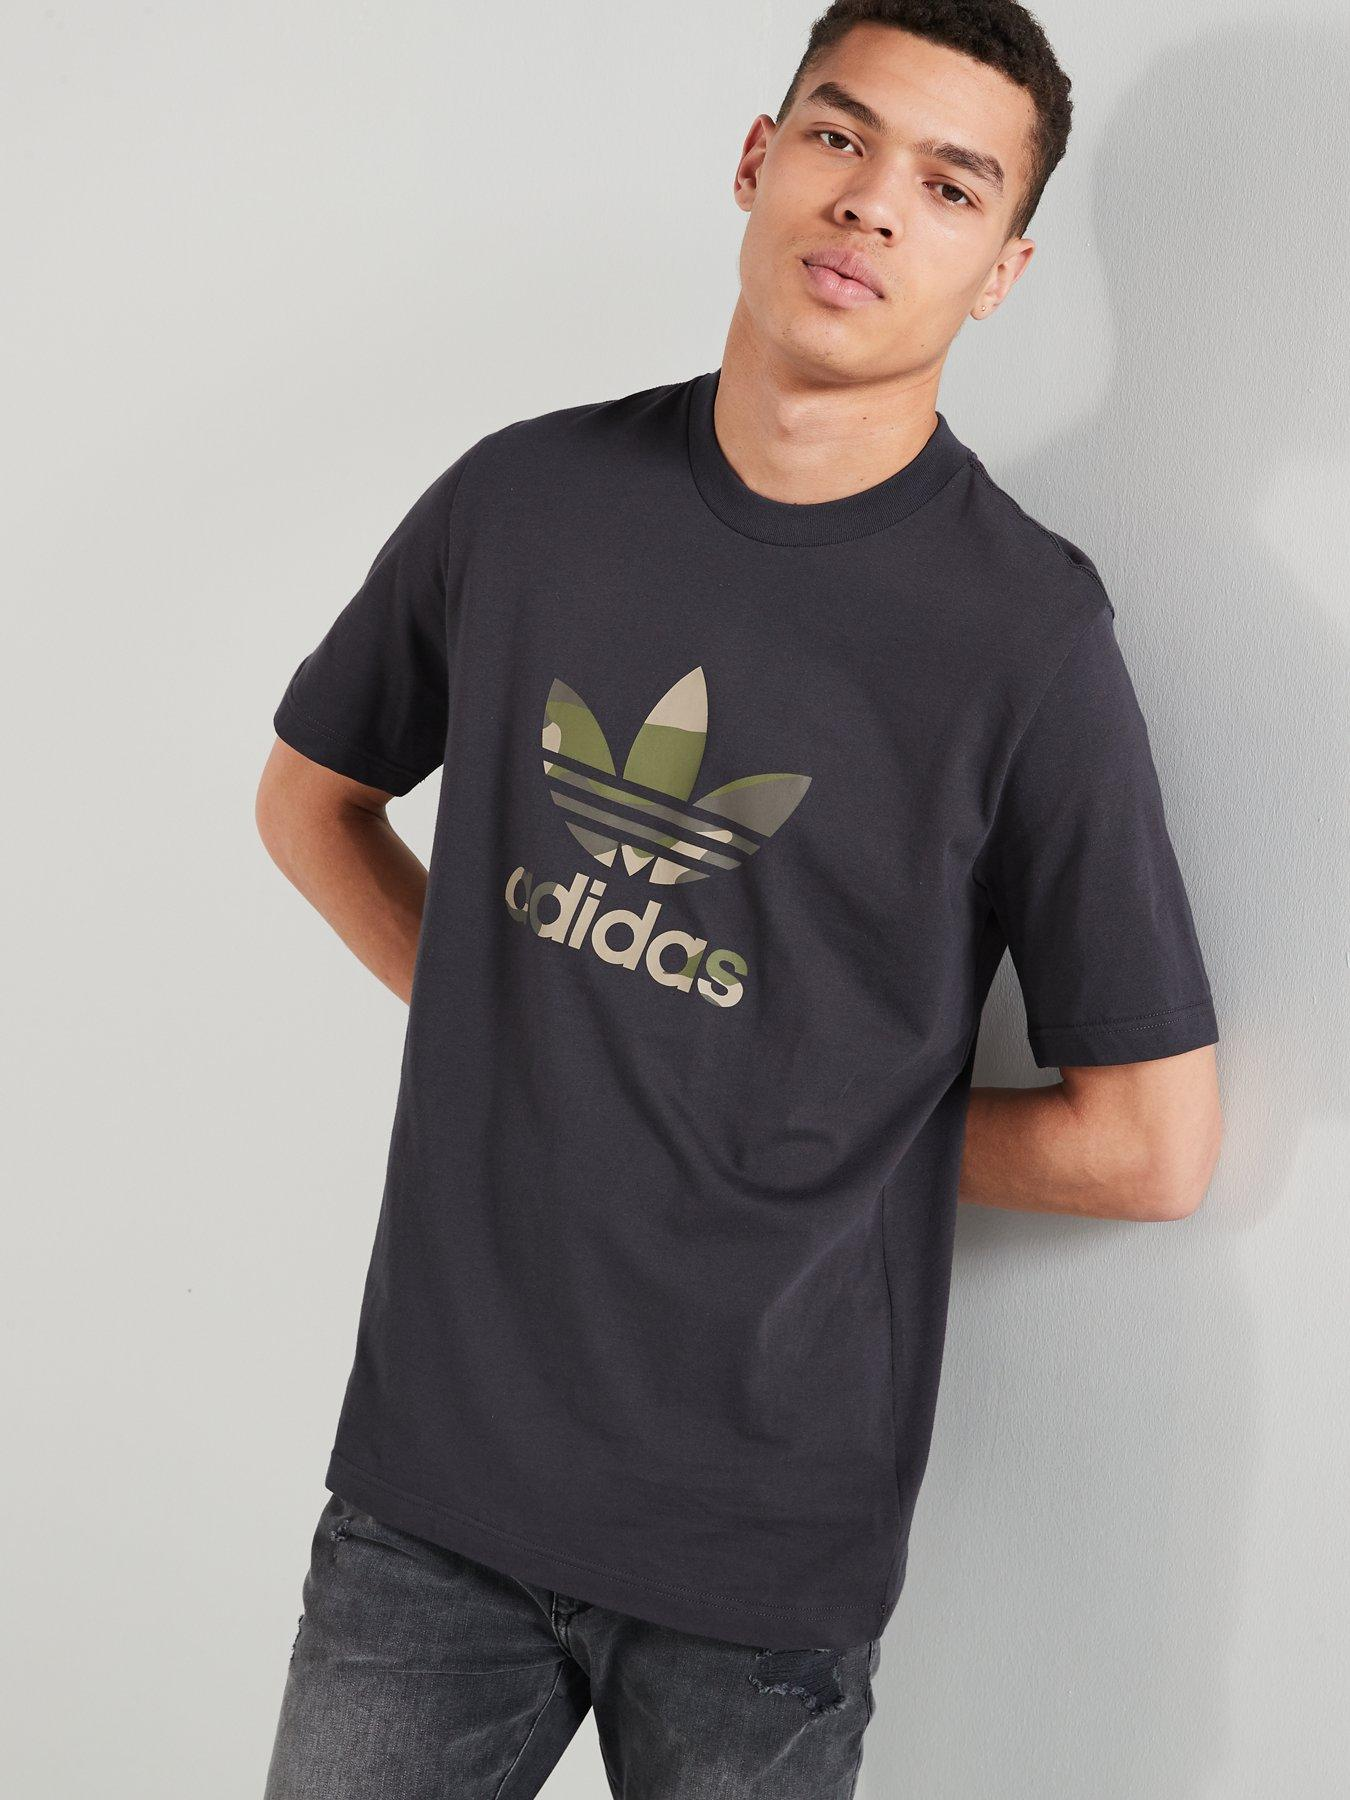 Shop co At Adidas uk Very Shirts T pqzBEz